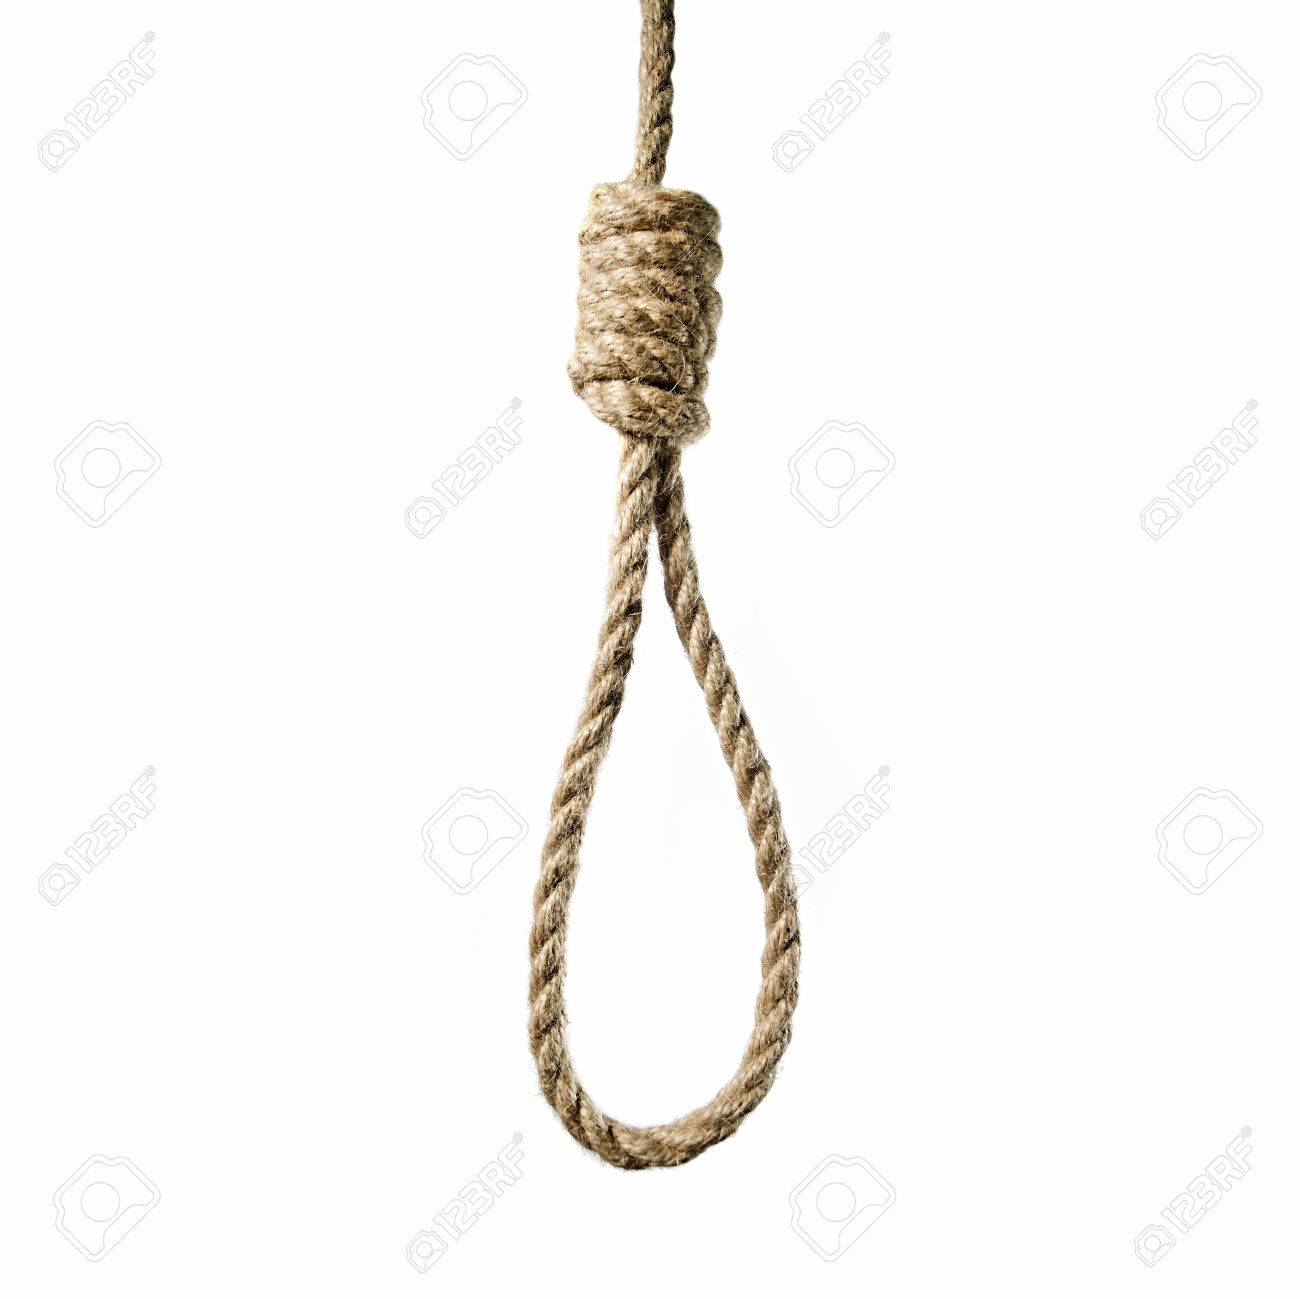 Mage Hanging Rope To Lynchs Loop On A White Background Stock 1300x1299